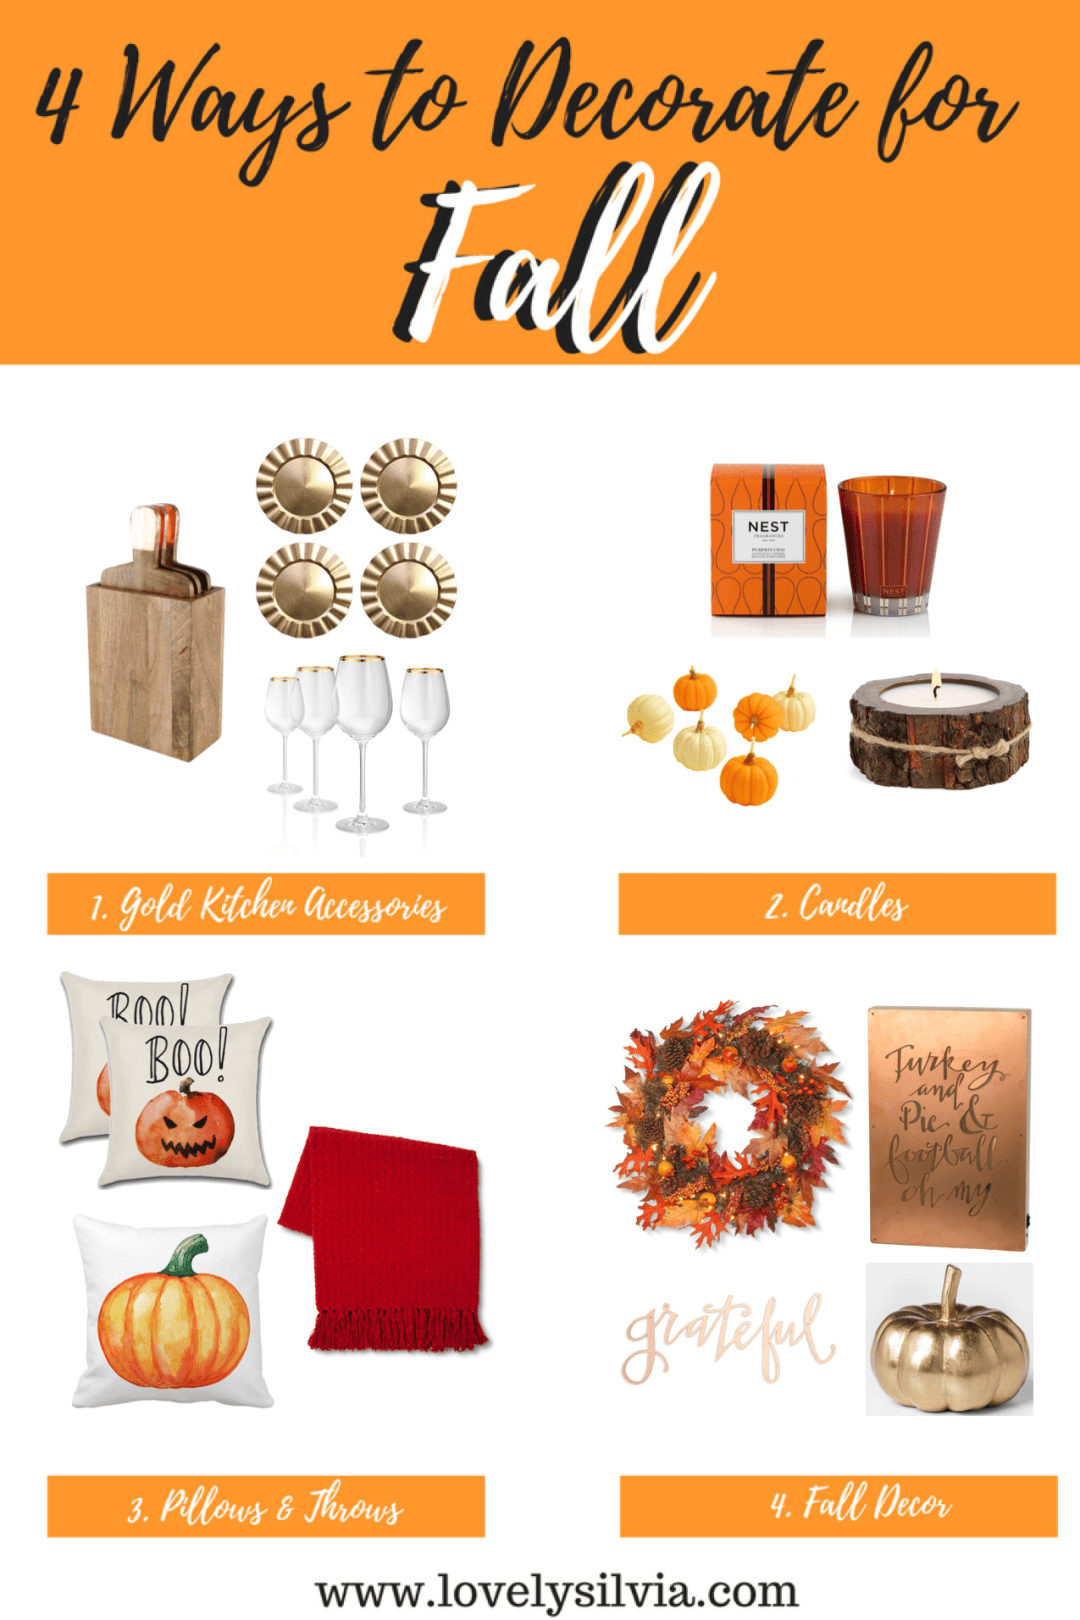 ways to decorate for fall, 4 ways to decorate for fall, fall kitchen accessories, fall candles, fall pillows and throws, fall decor, home decor for fall, fall home decorating